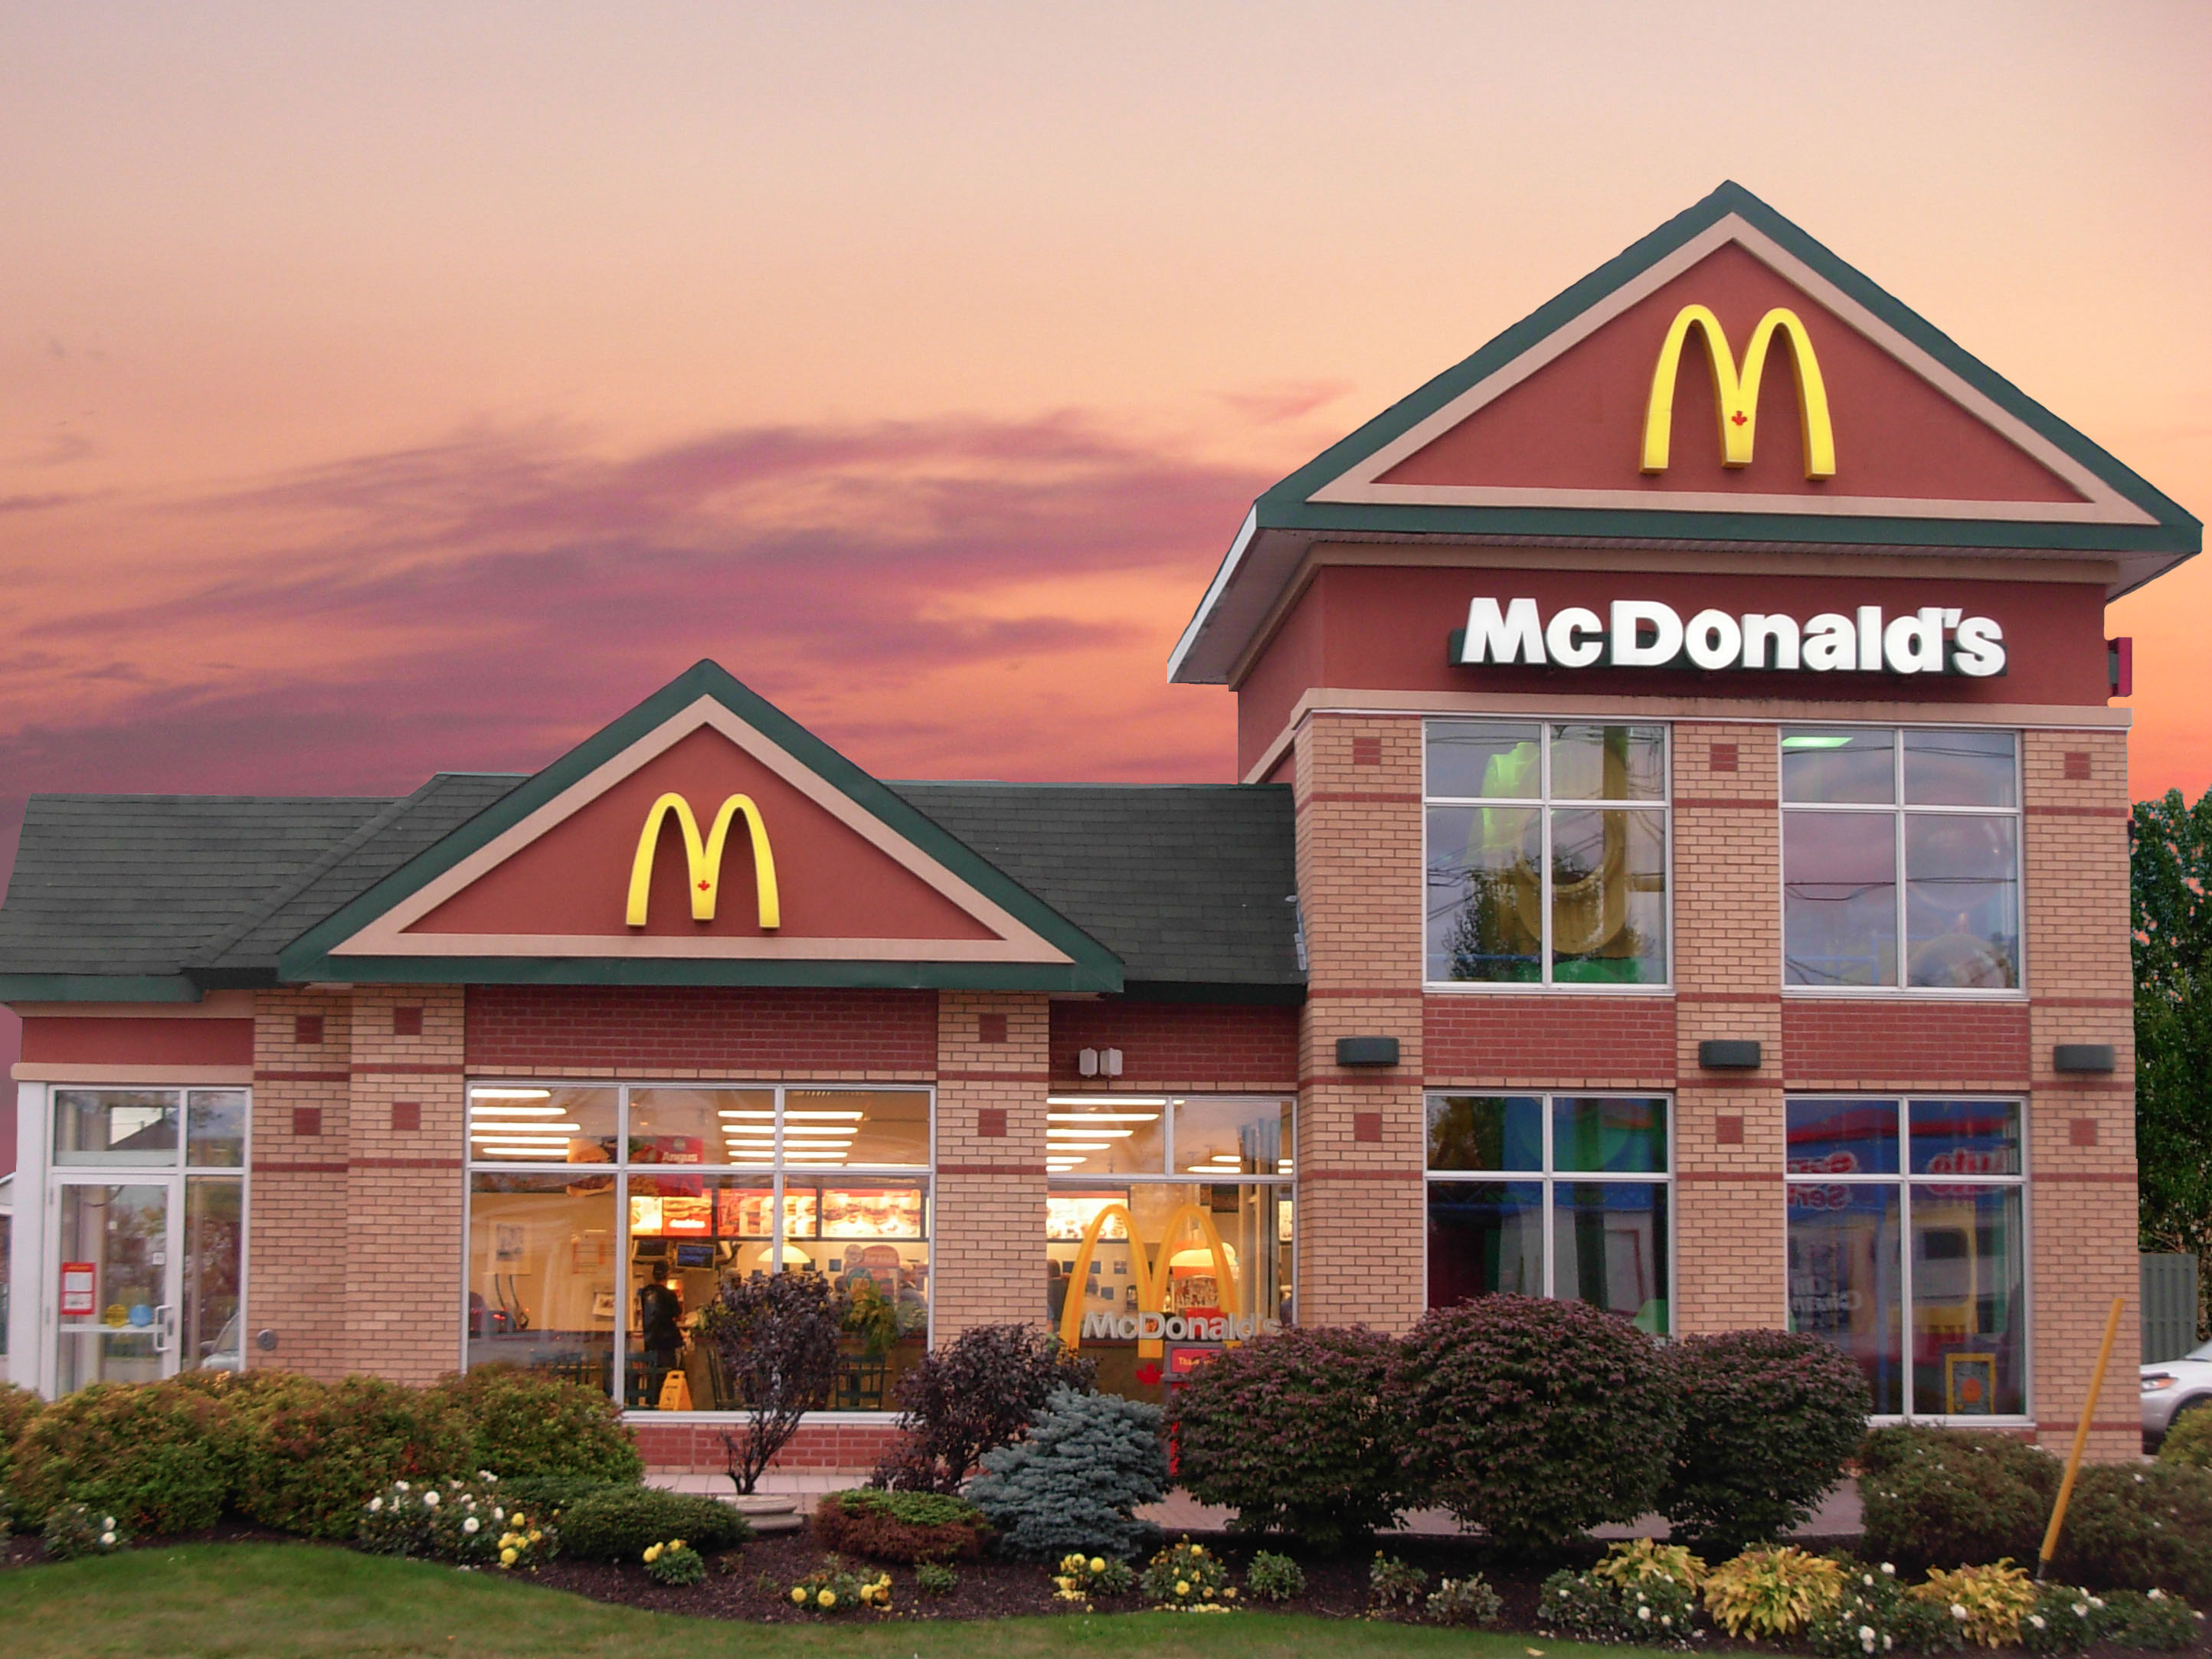 mcdonalds-is-becoming-a-better-place-to-work.jpg (2888×2166)